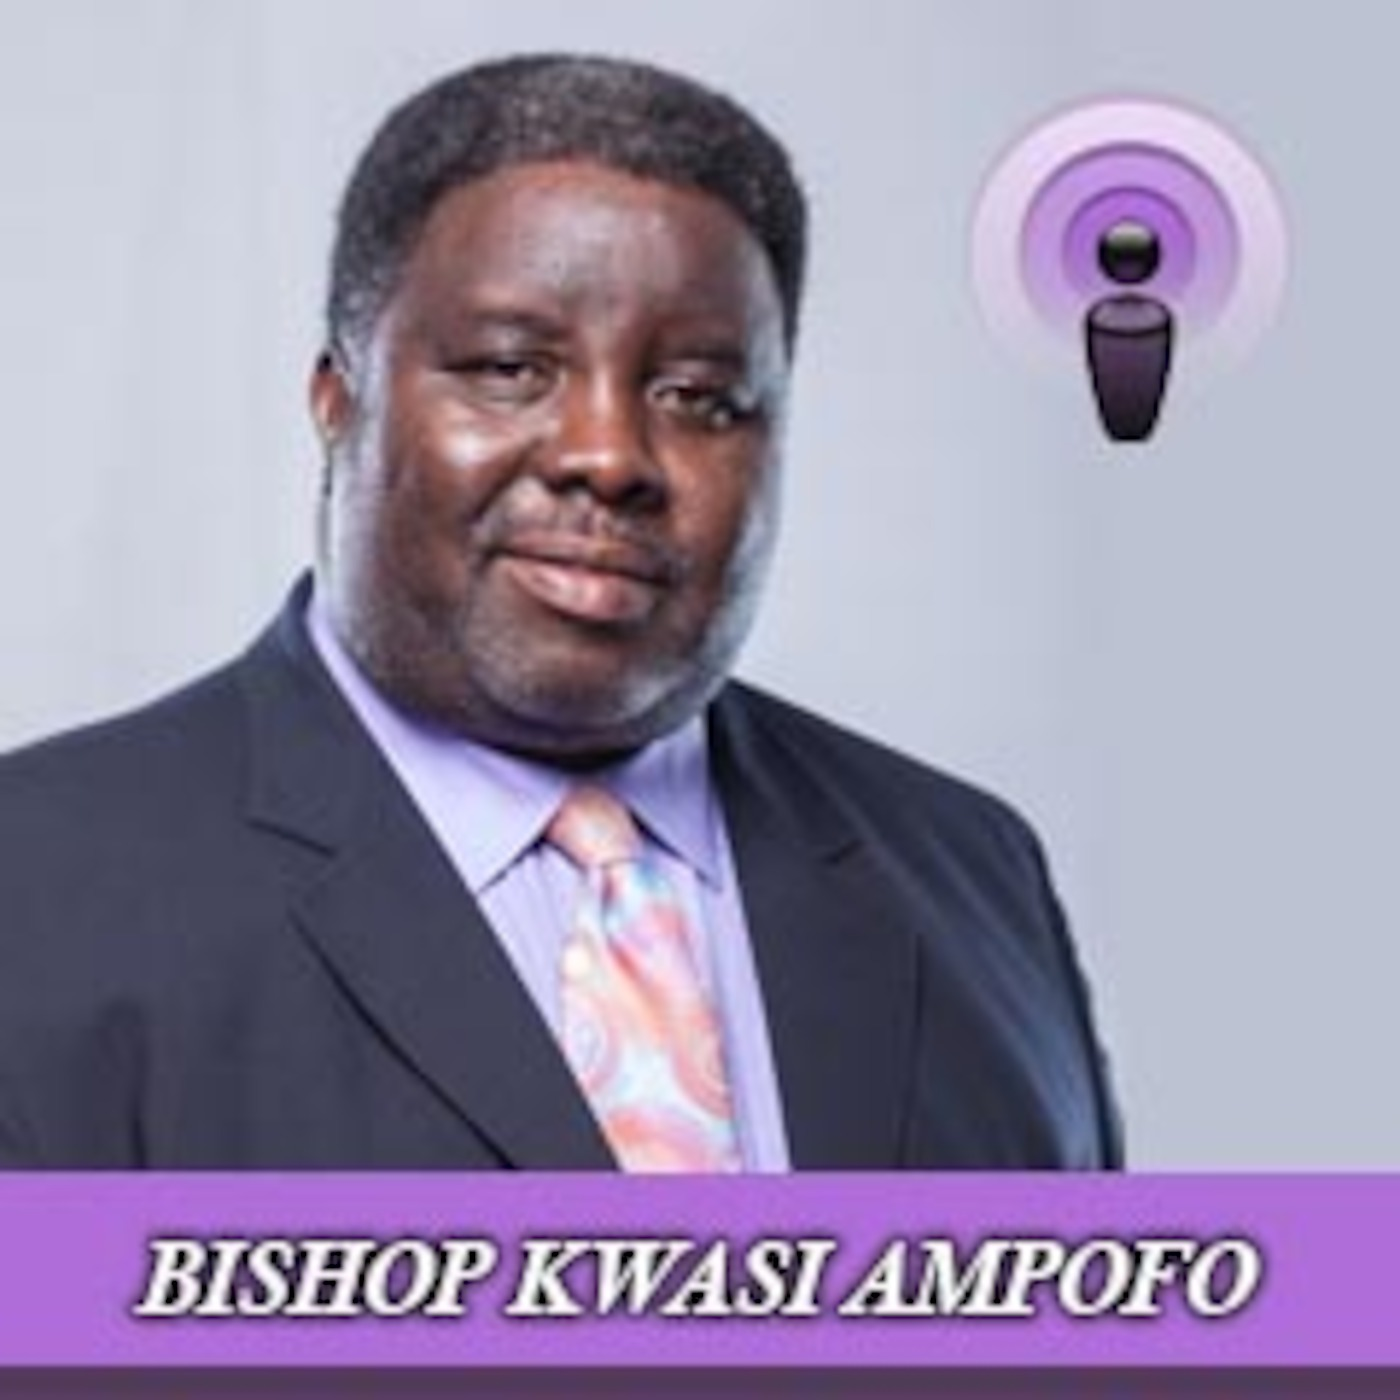 Bishop Kwasi Ampofo